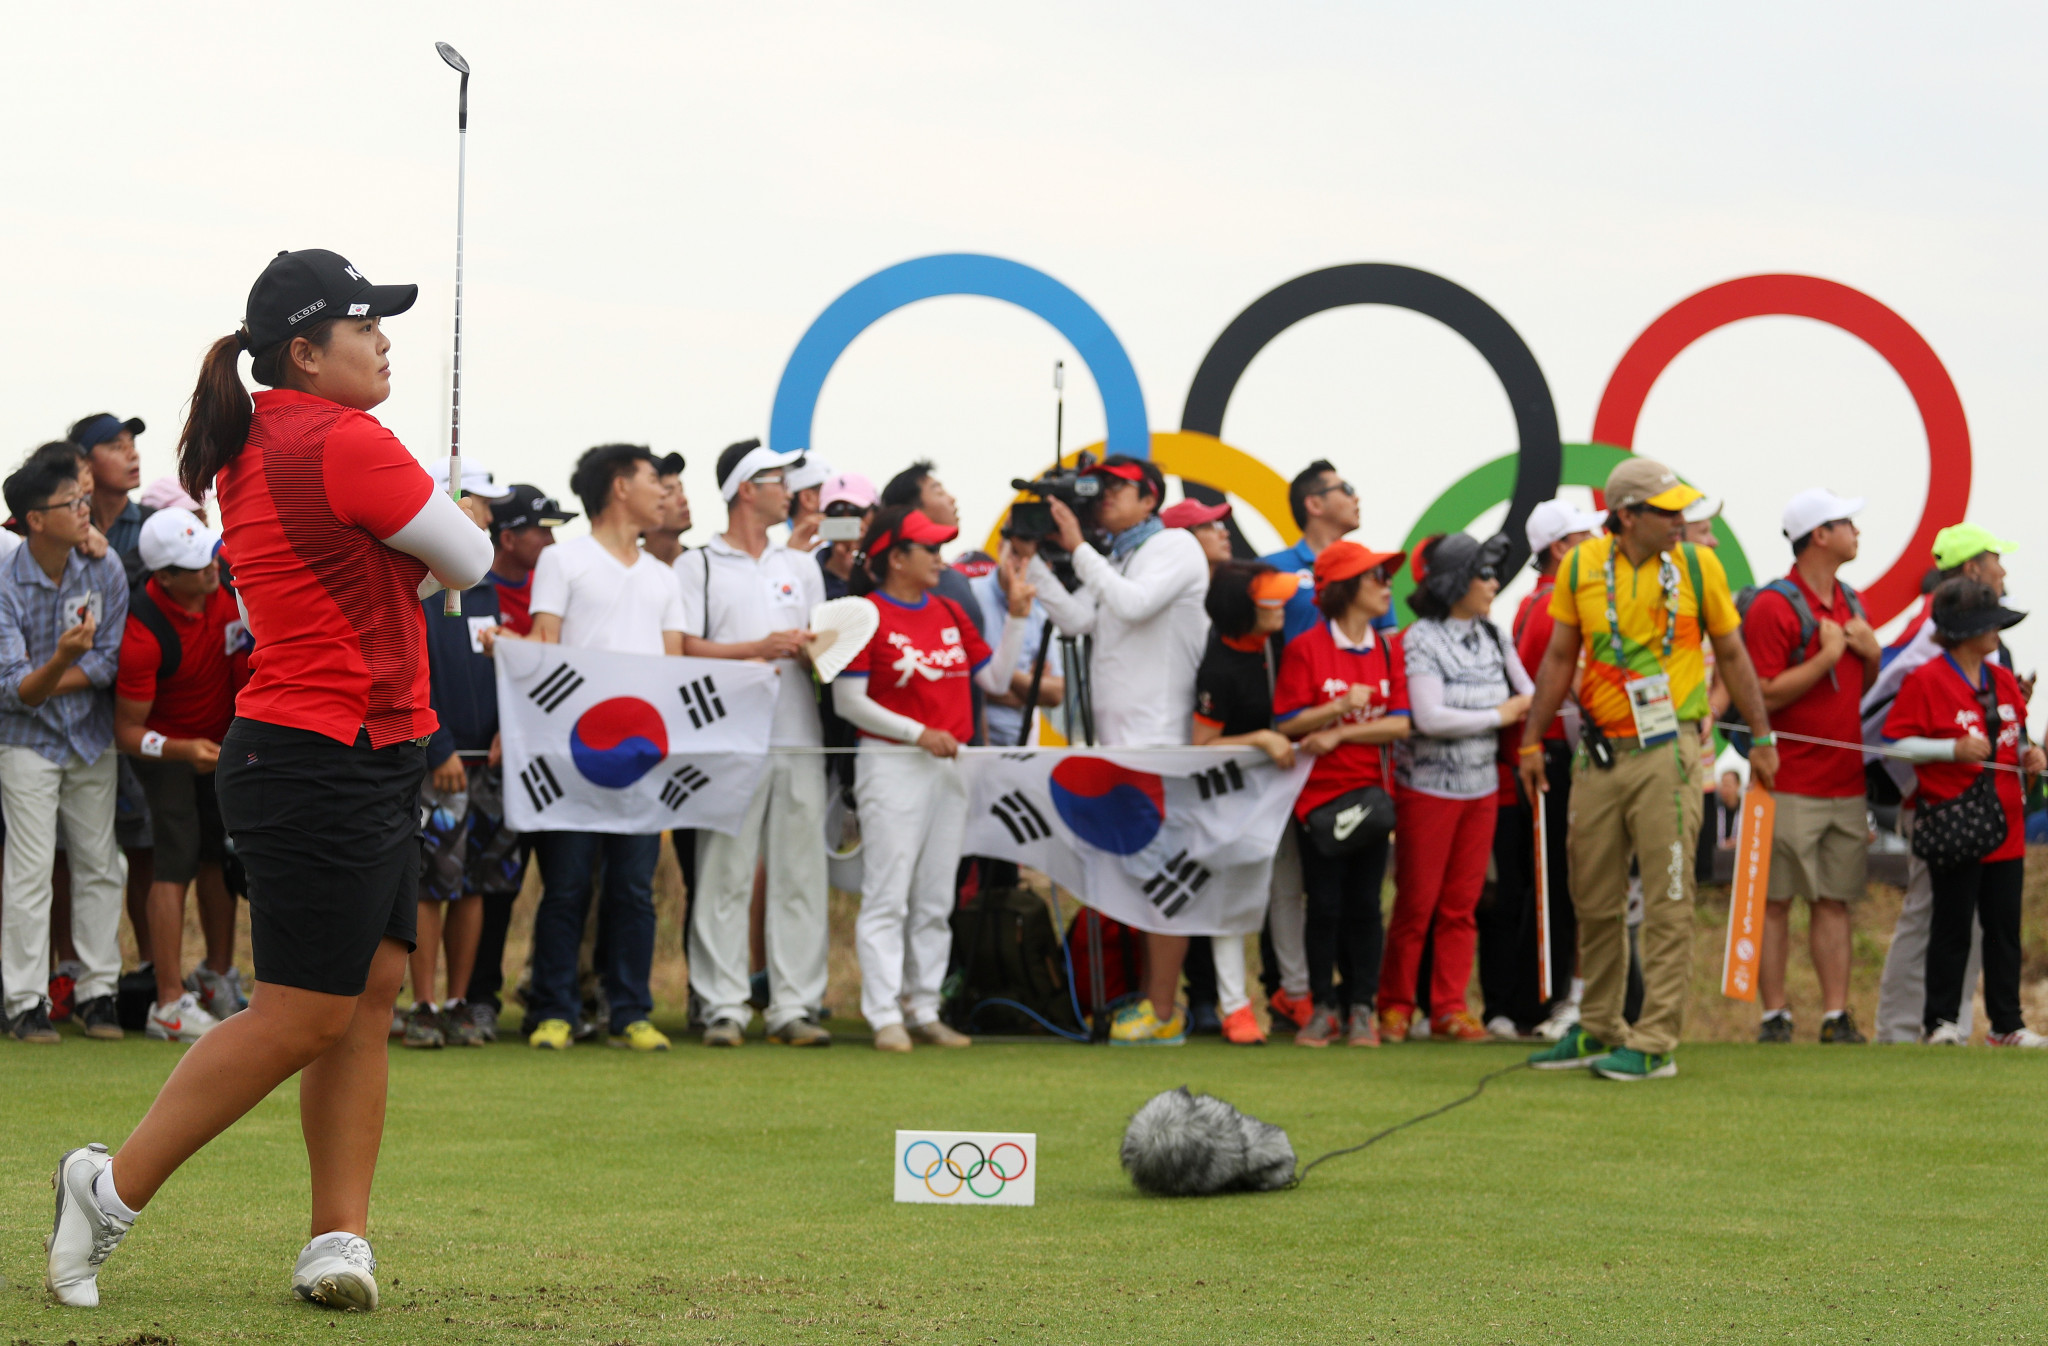 Could Olympic golf soon include a mixed team event? ©Getty Images